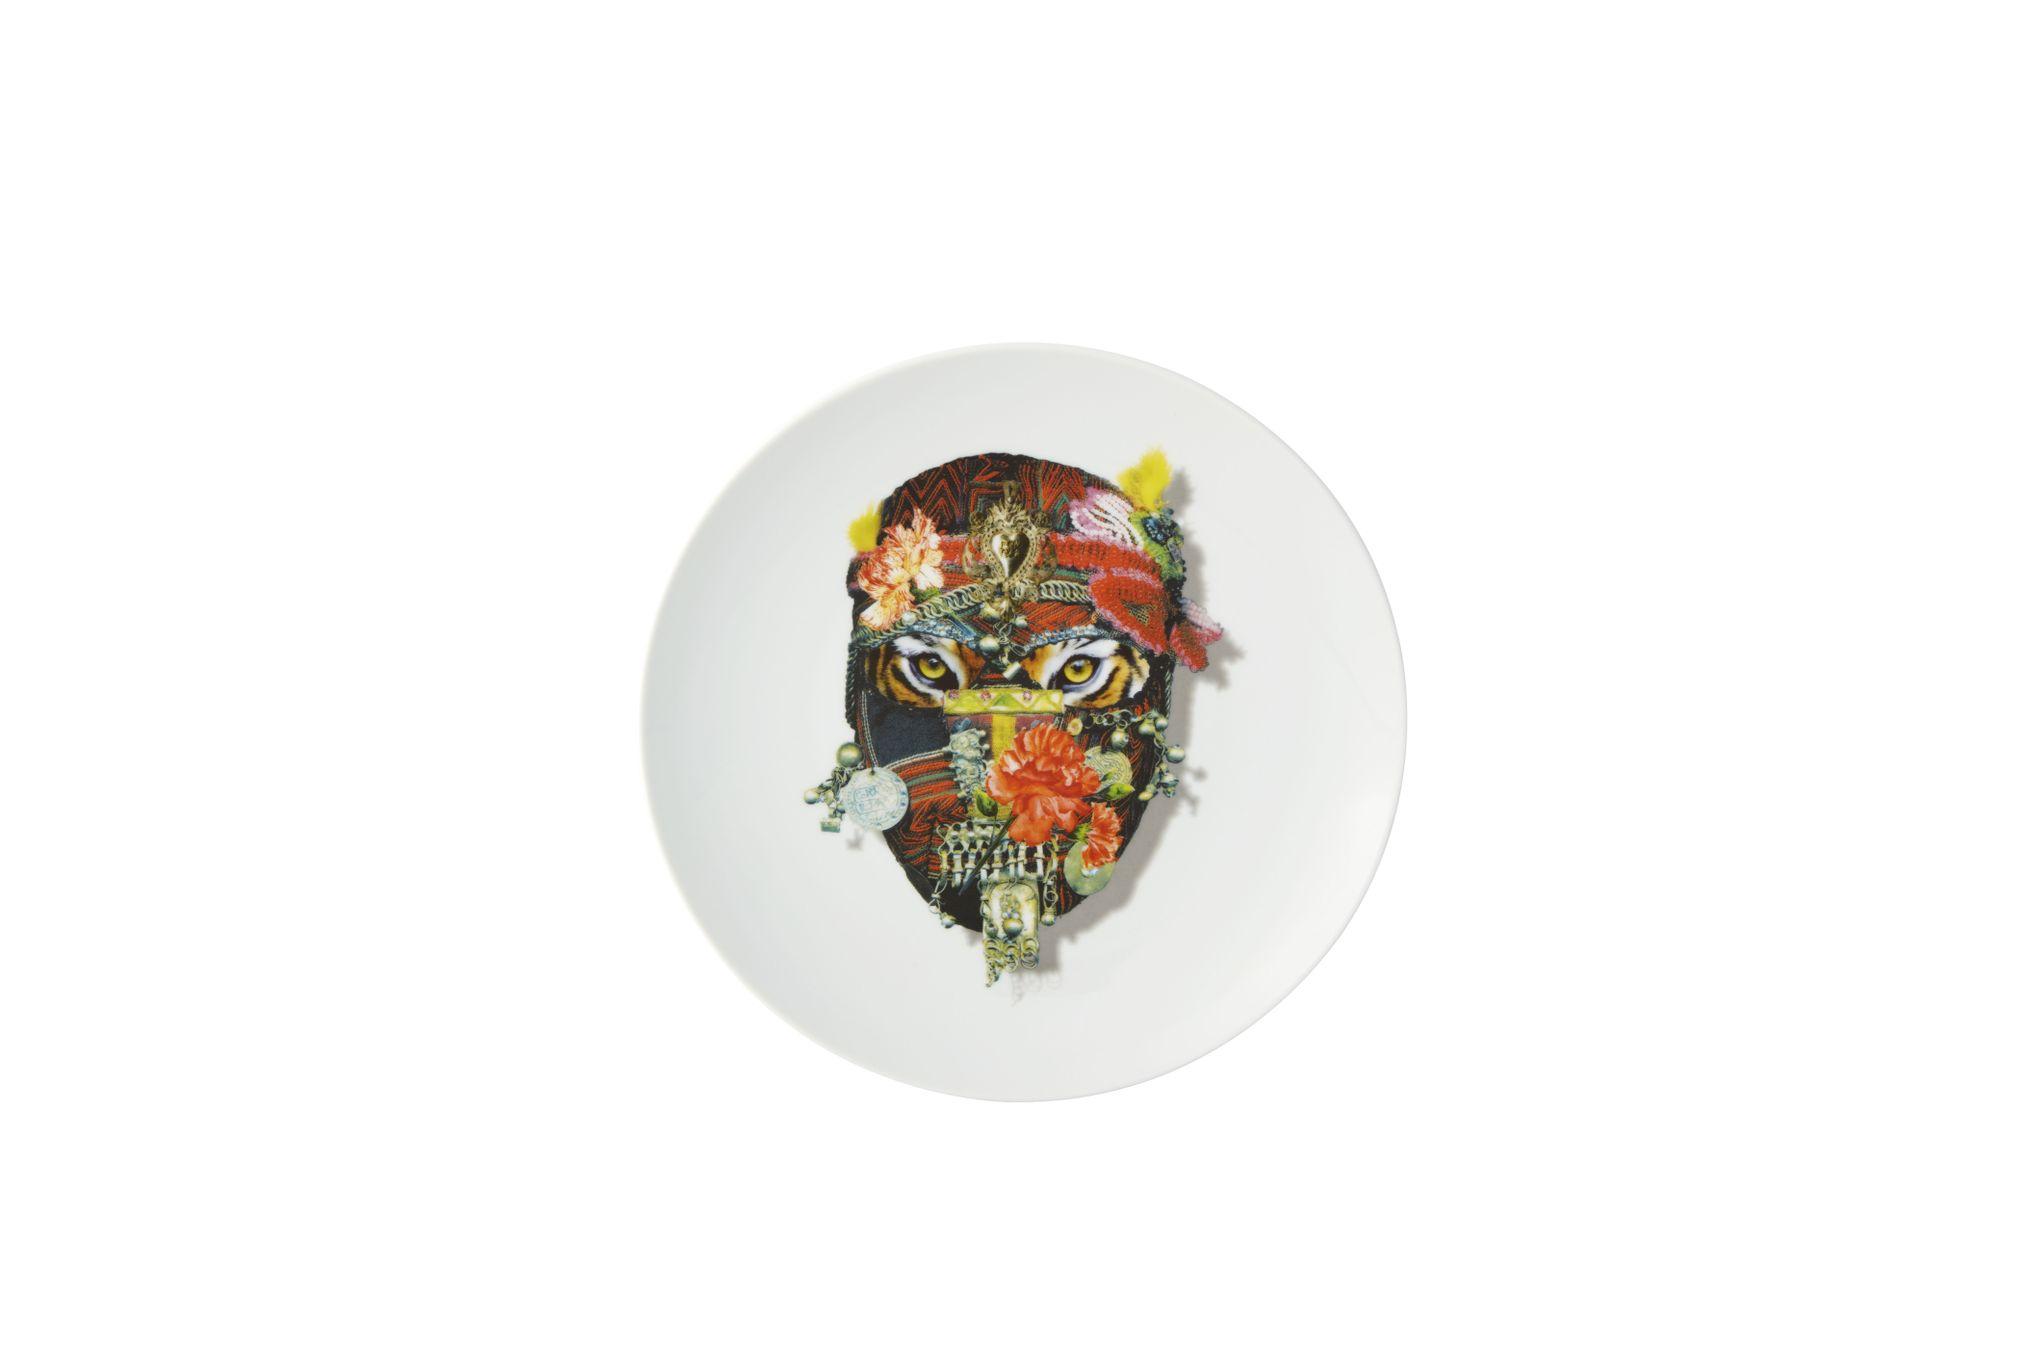 Christian Lacroix Love Who You Want Plate - Giftware Mister Tiger - Gift Boxed 23cm thumb 2